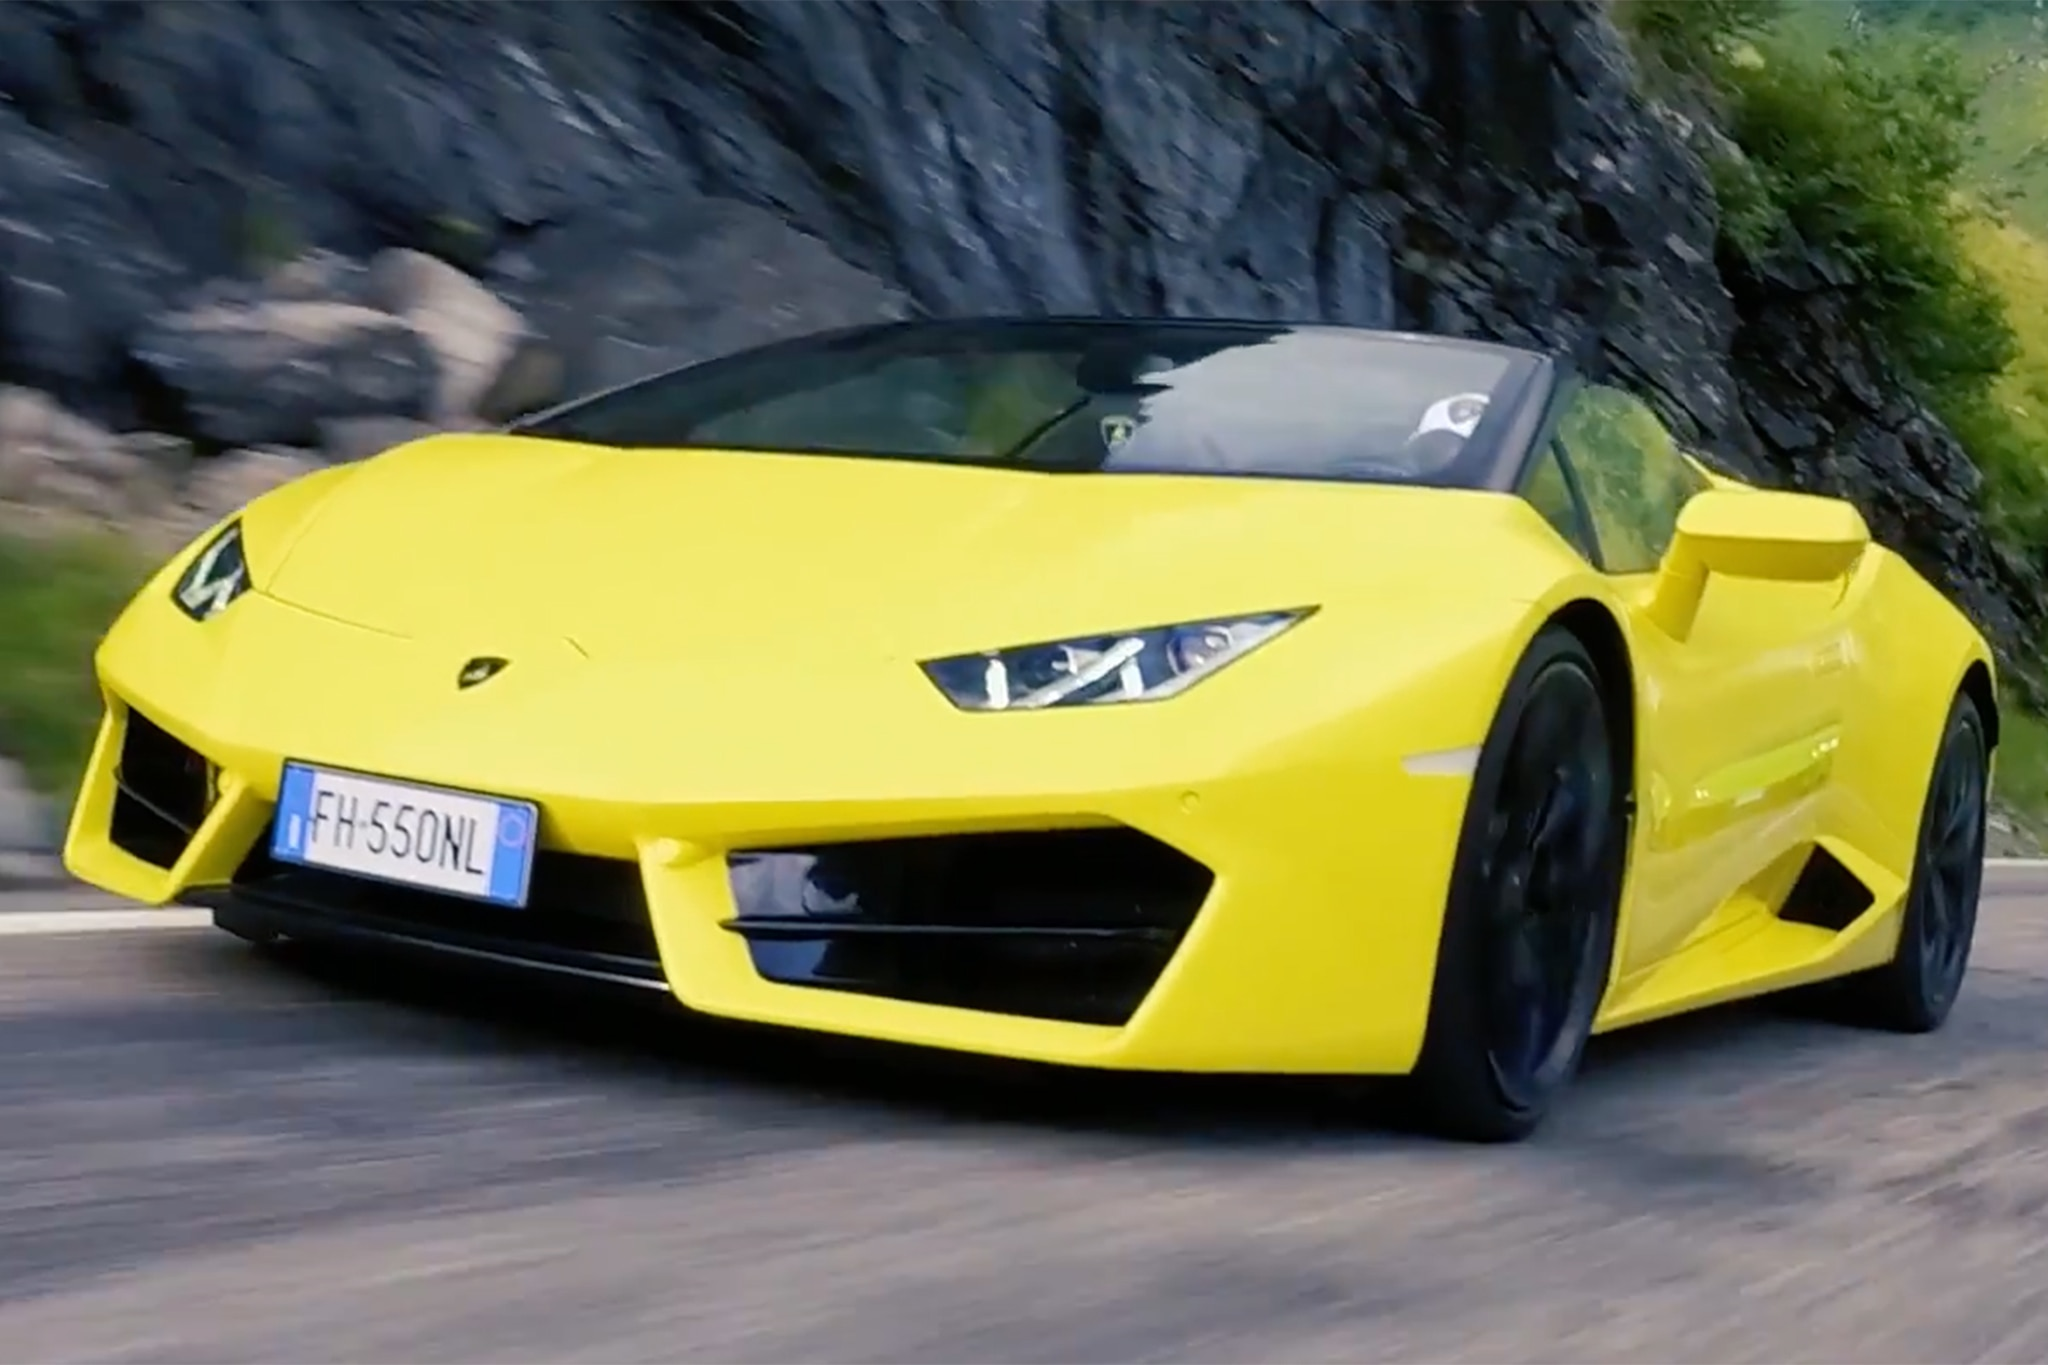 Lamborghini On The Transfagarasan Highway